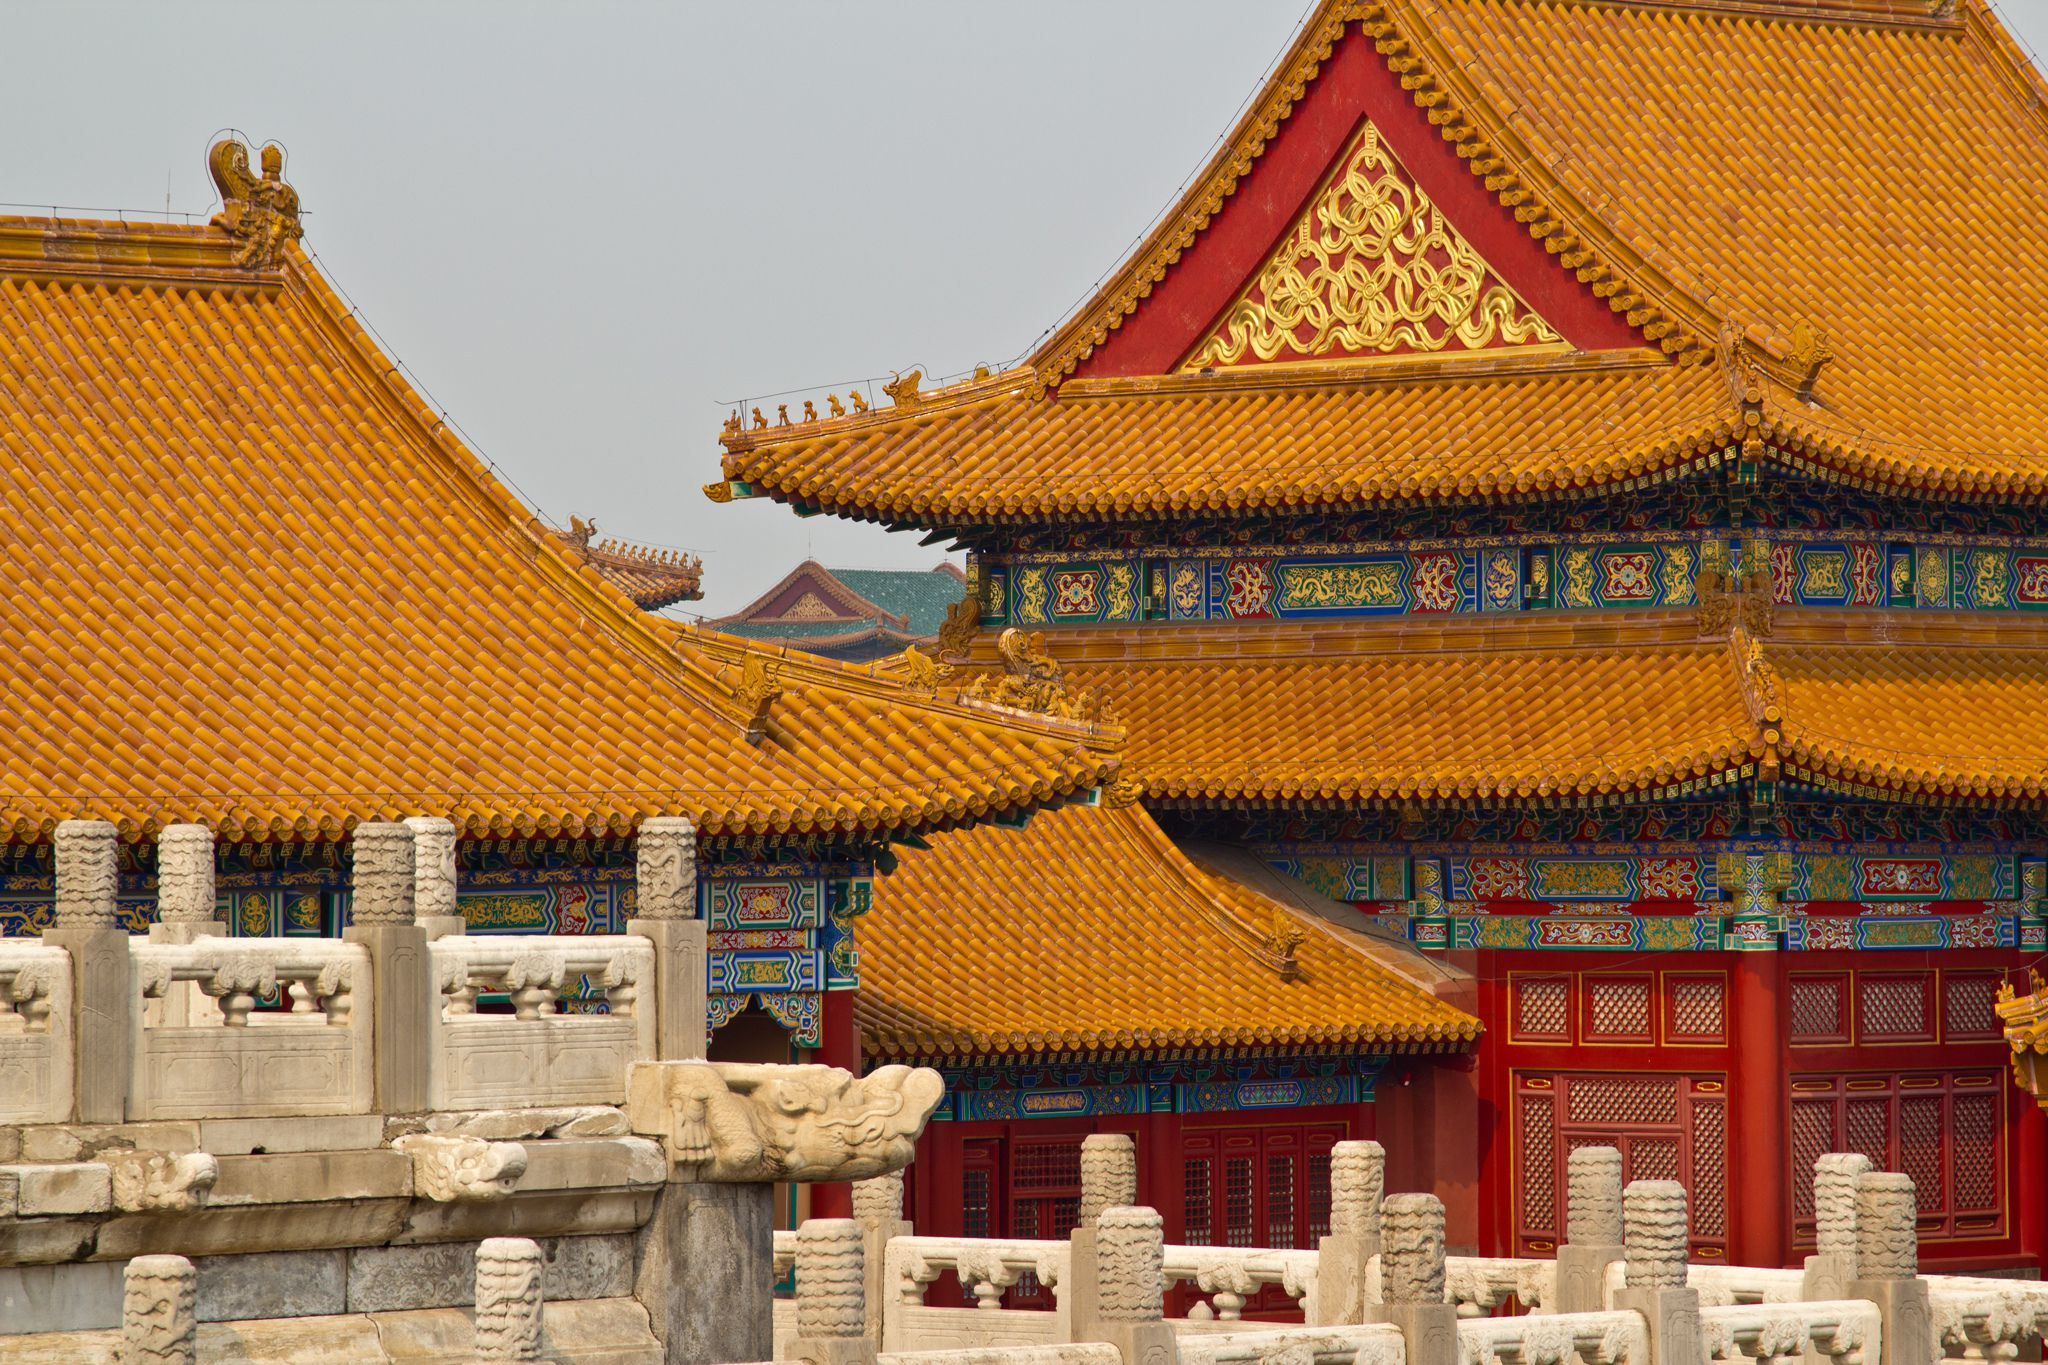 Visitor's Guide to the Forbidden City (Palace Museum) in Beijing